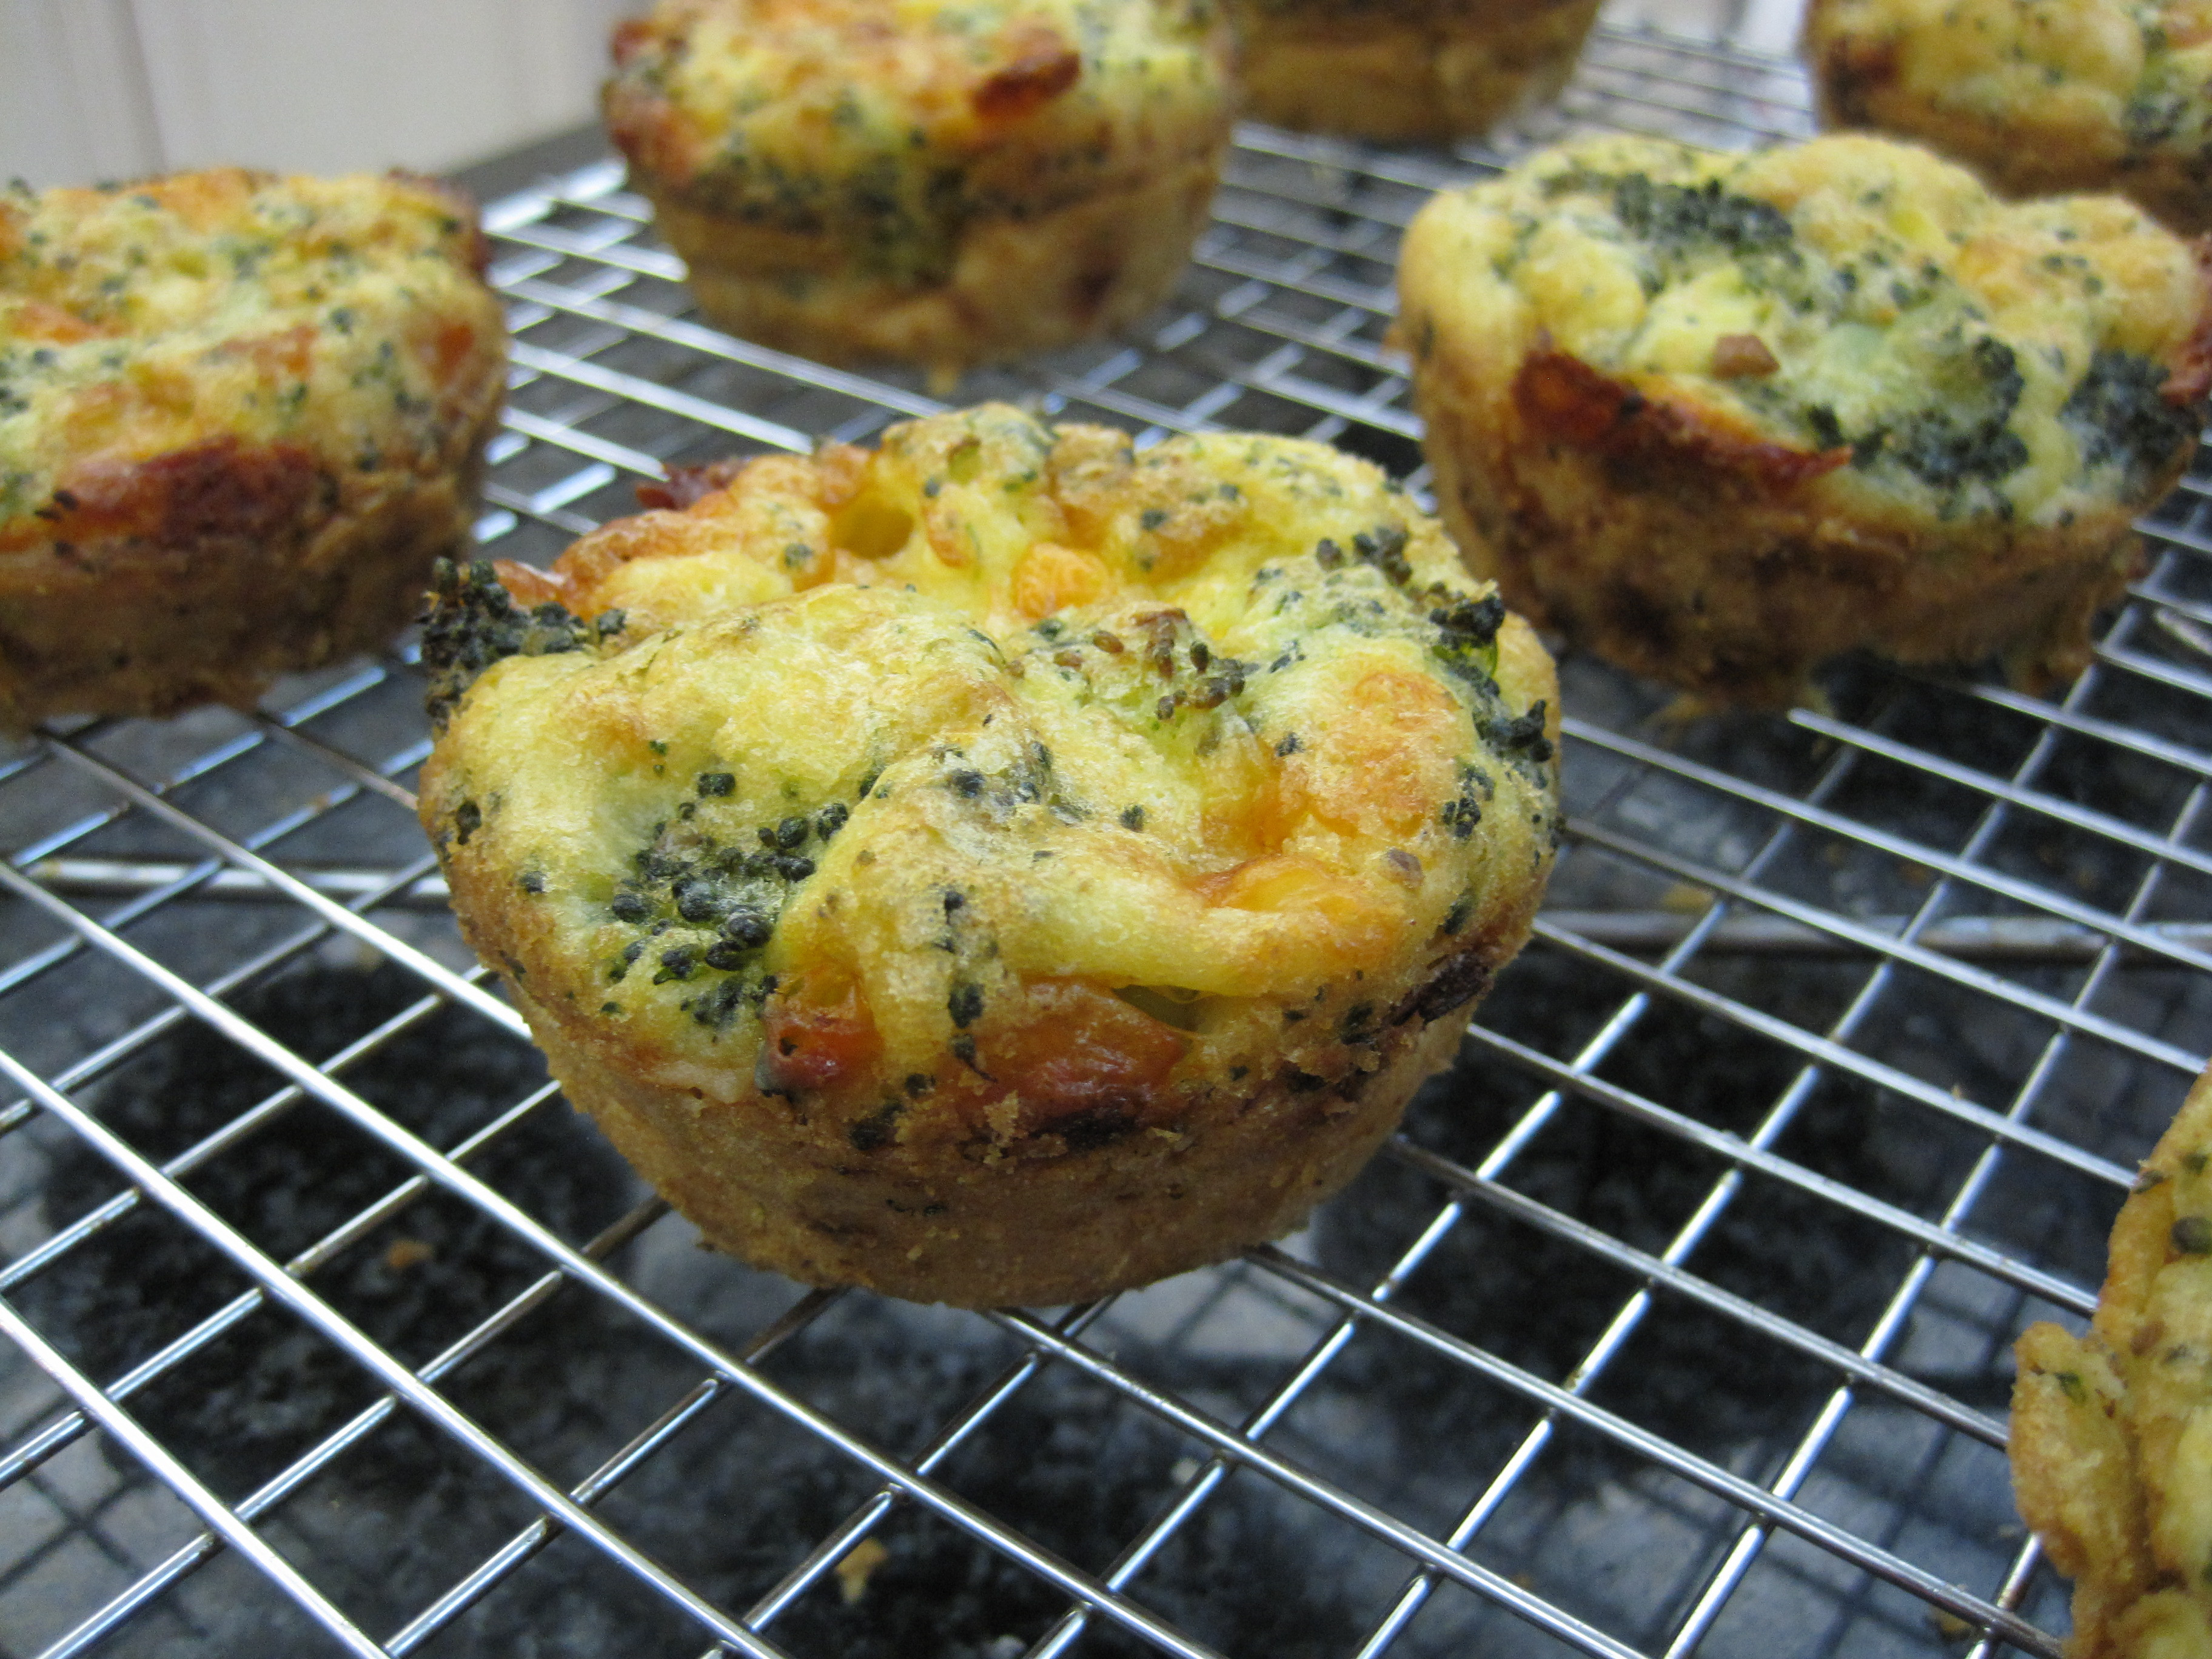 Breakfast Muffin Recipe  Broccoli Egg and Cheese Breakfast Muffins with a gluten